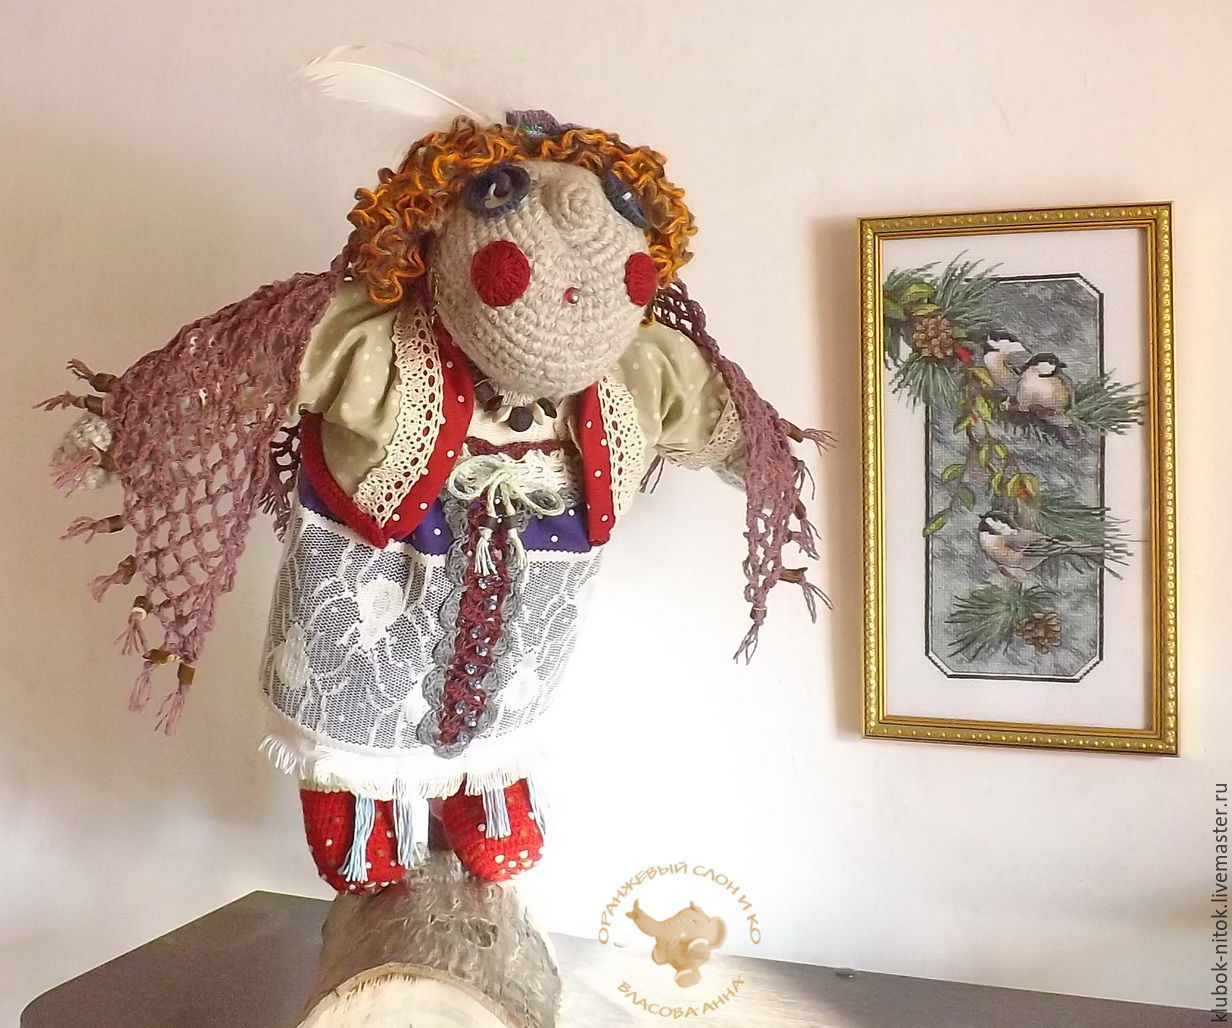 Interior doll the owl is the guardian of the forest art dolls in Russian style, doll stand, doll gift, handmade doll